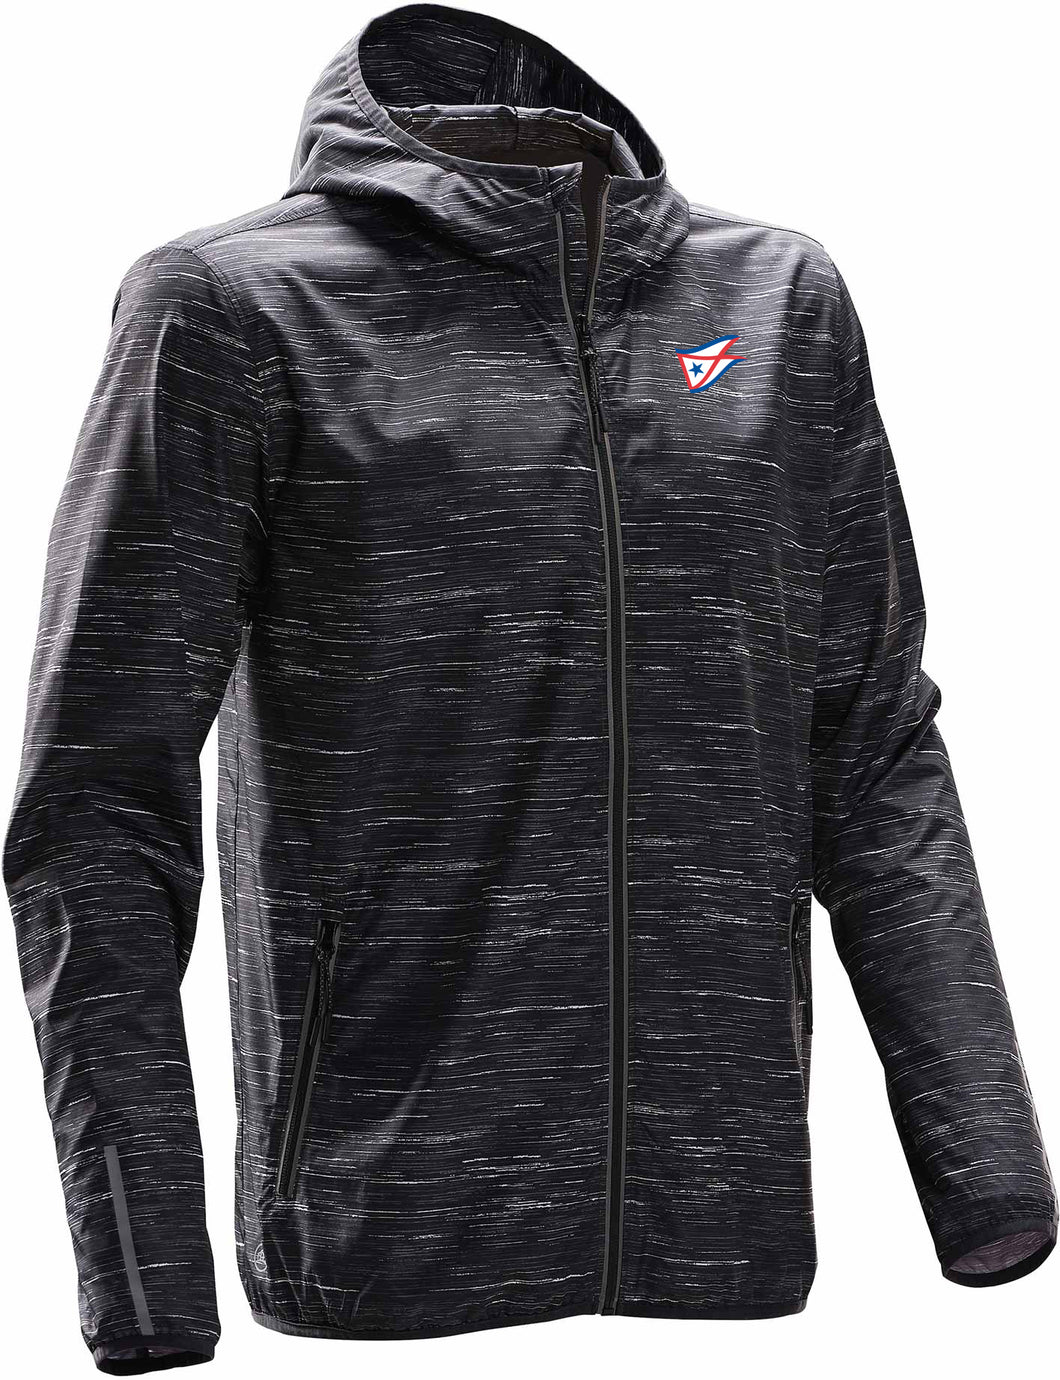 Storm Tech Ms Ozone Lightweight Shell